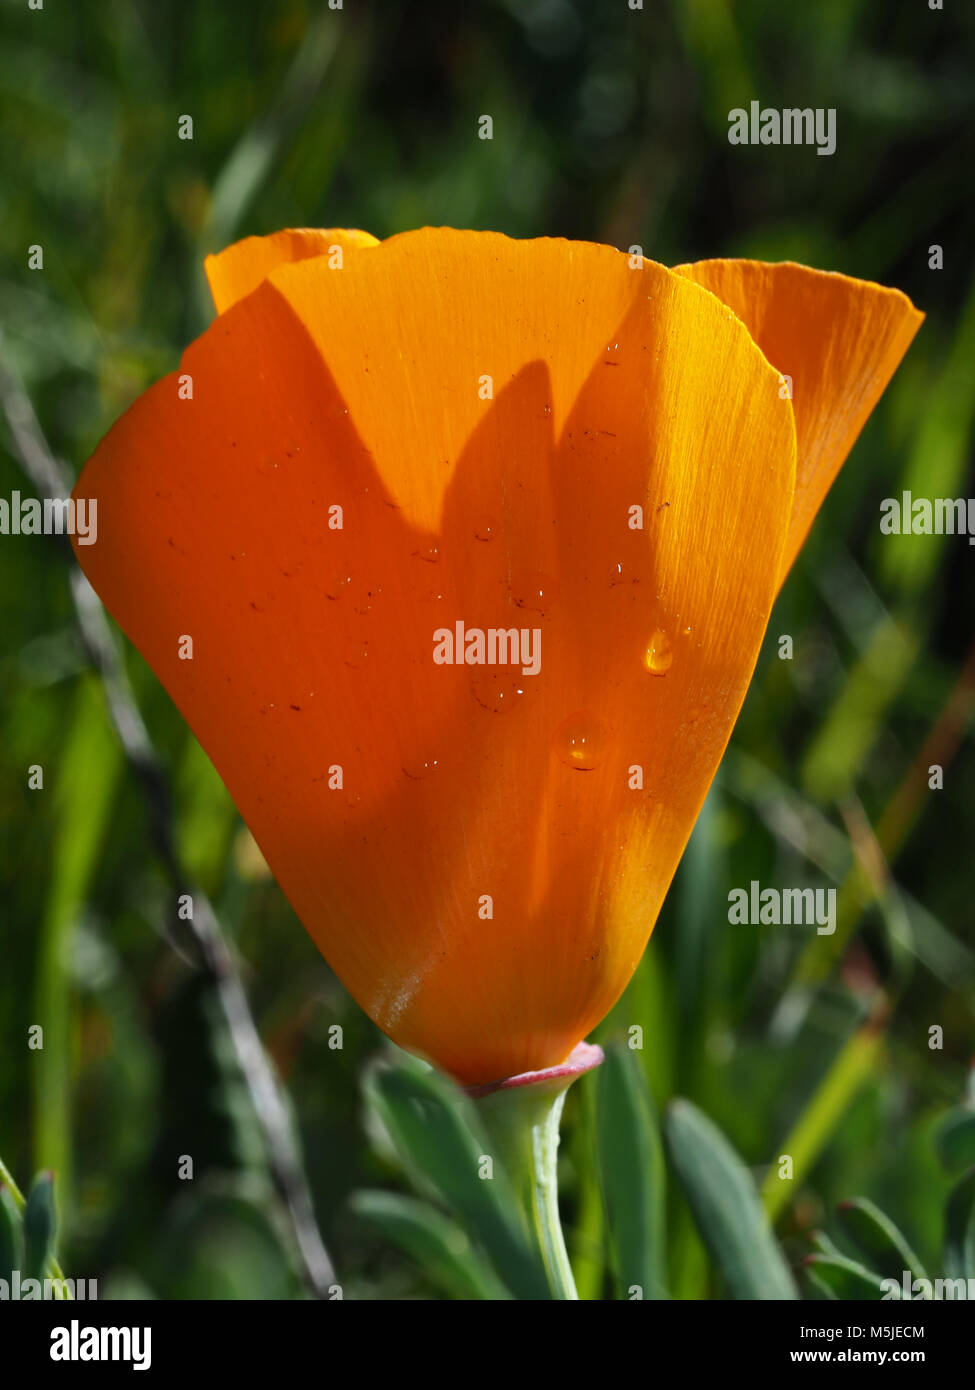 California Poppy Eschscholzia Californica Flower State Flower Of